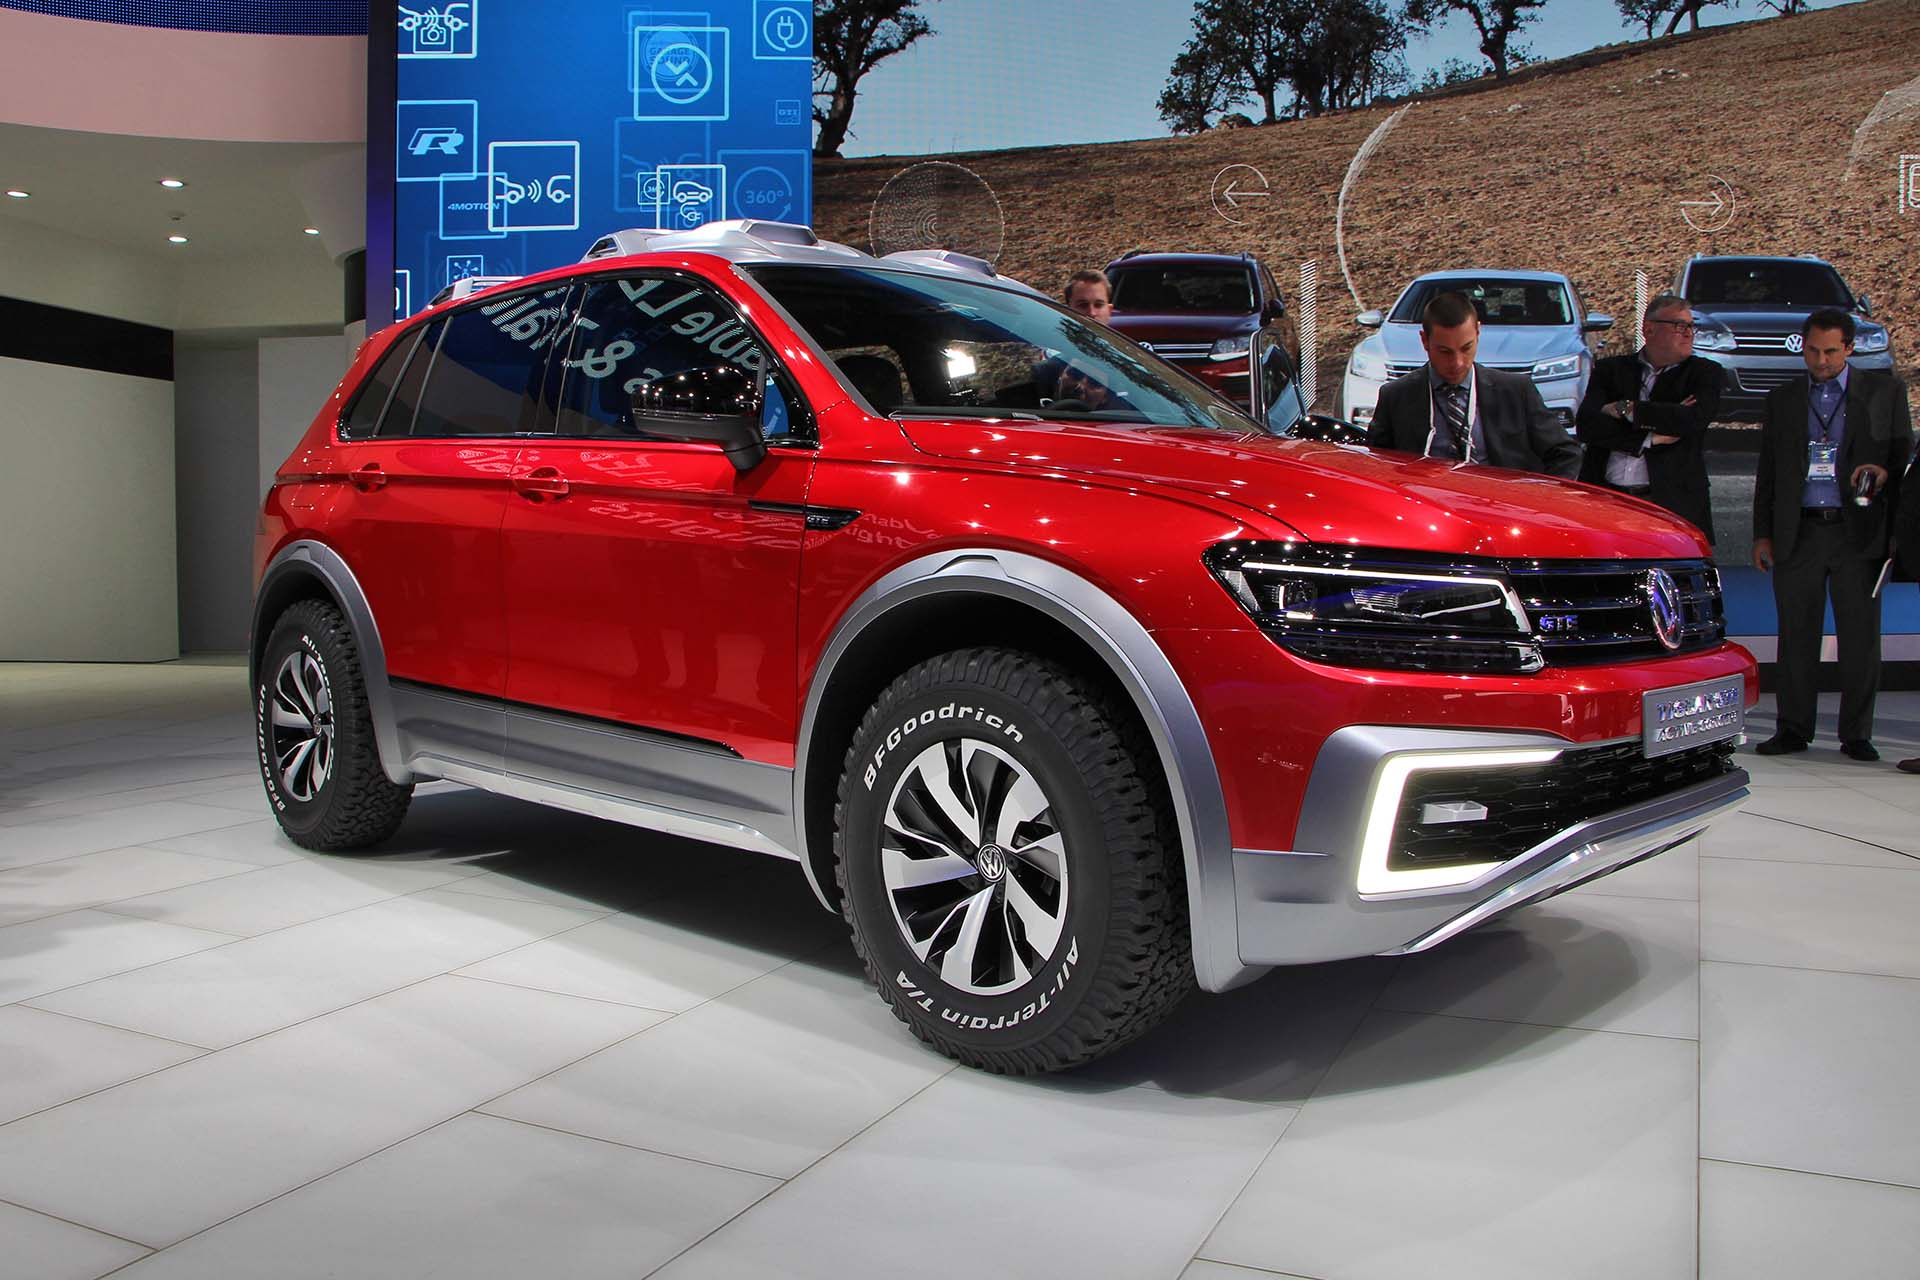 Volkswagen's Tiguan GTE Active off-road hybrid concept also makes use of dual electric motors, but they're paired to a 12.4 kWh battery that'll go 32 km in electric-only mode. The gasoline engine automatically kicks in when the battery runs low or when your off-road hijinks call for more power. Who says green cars can't be dirty?